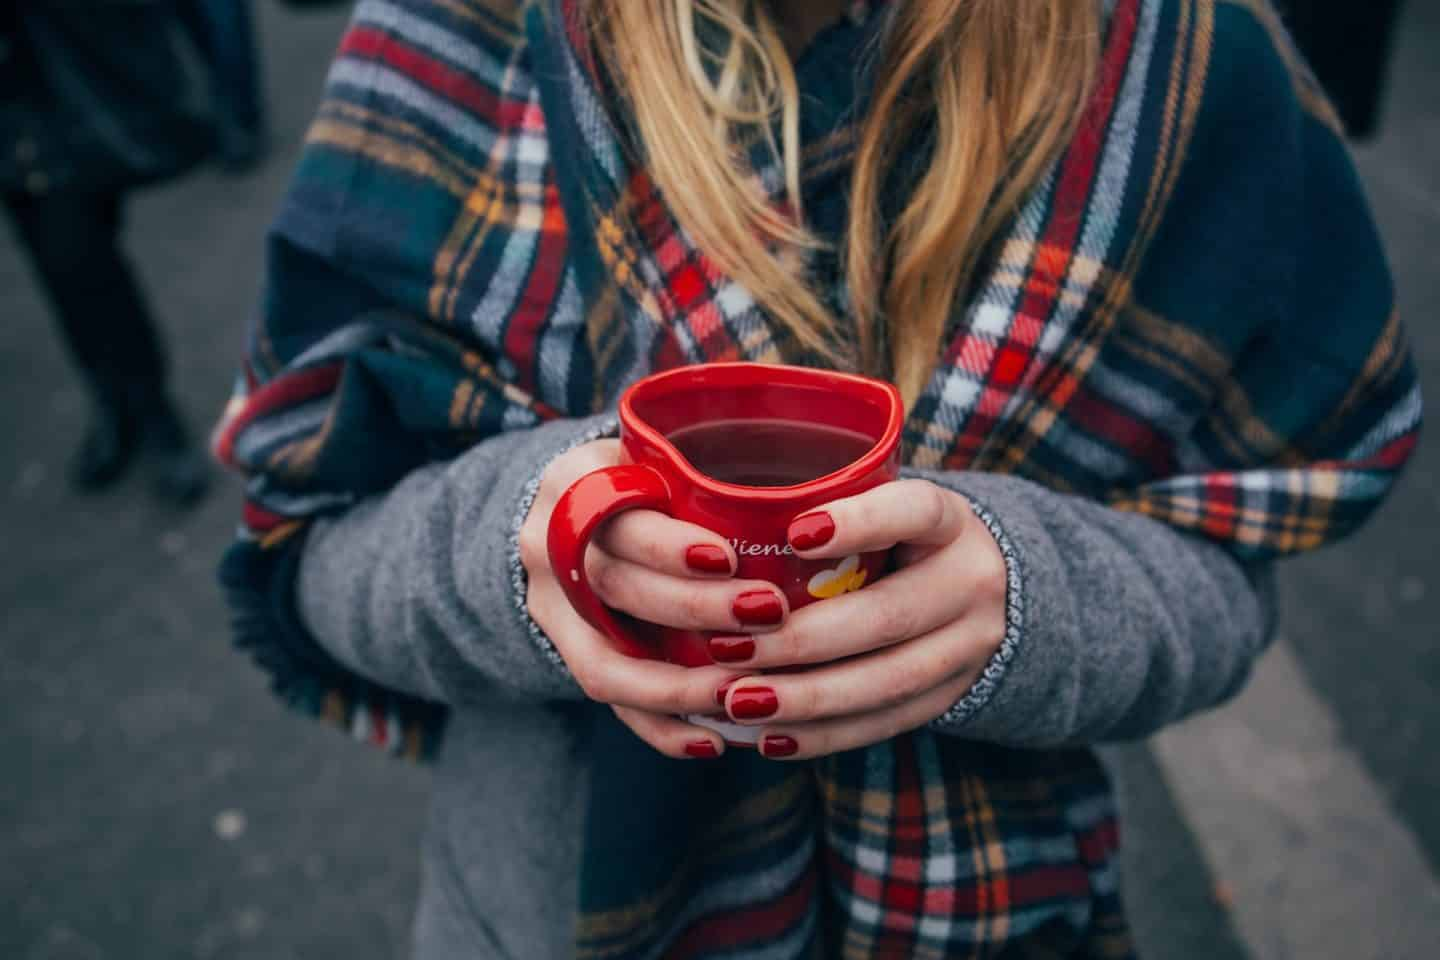 https://pixabay.com/en/mug-cup-coffee-beverage-plaid-1209194/